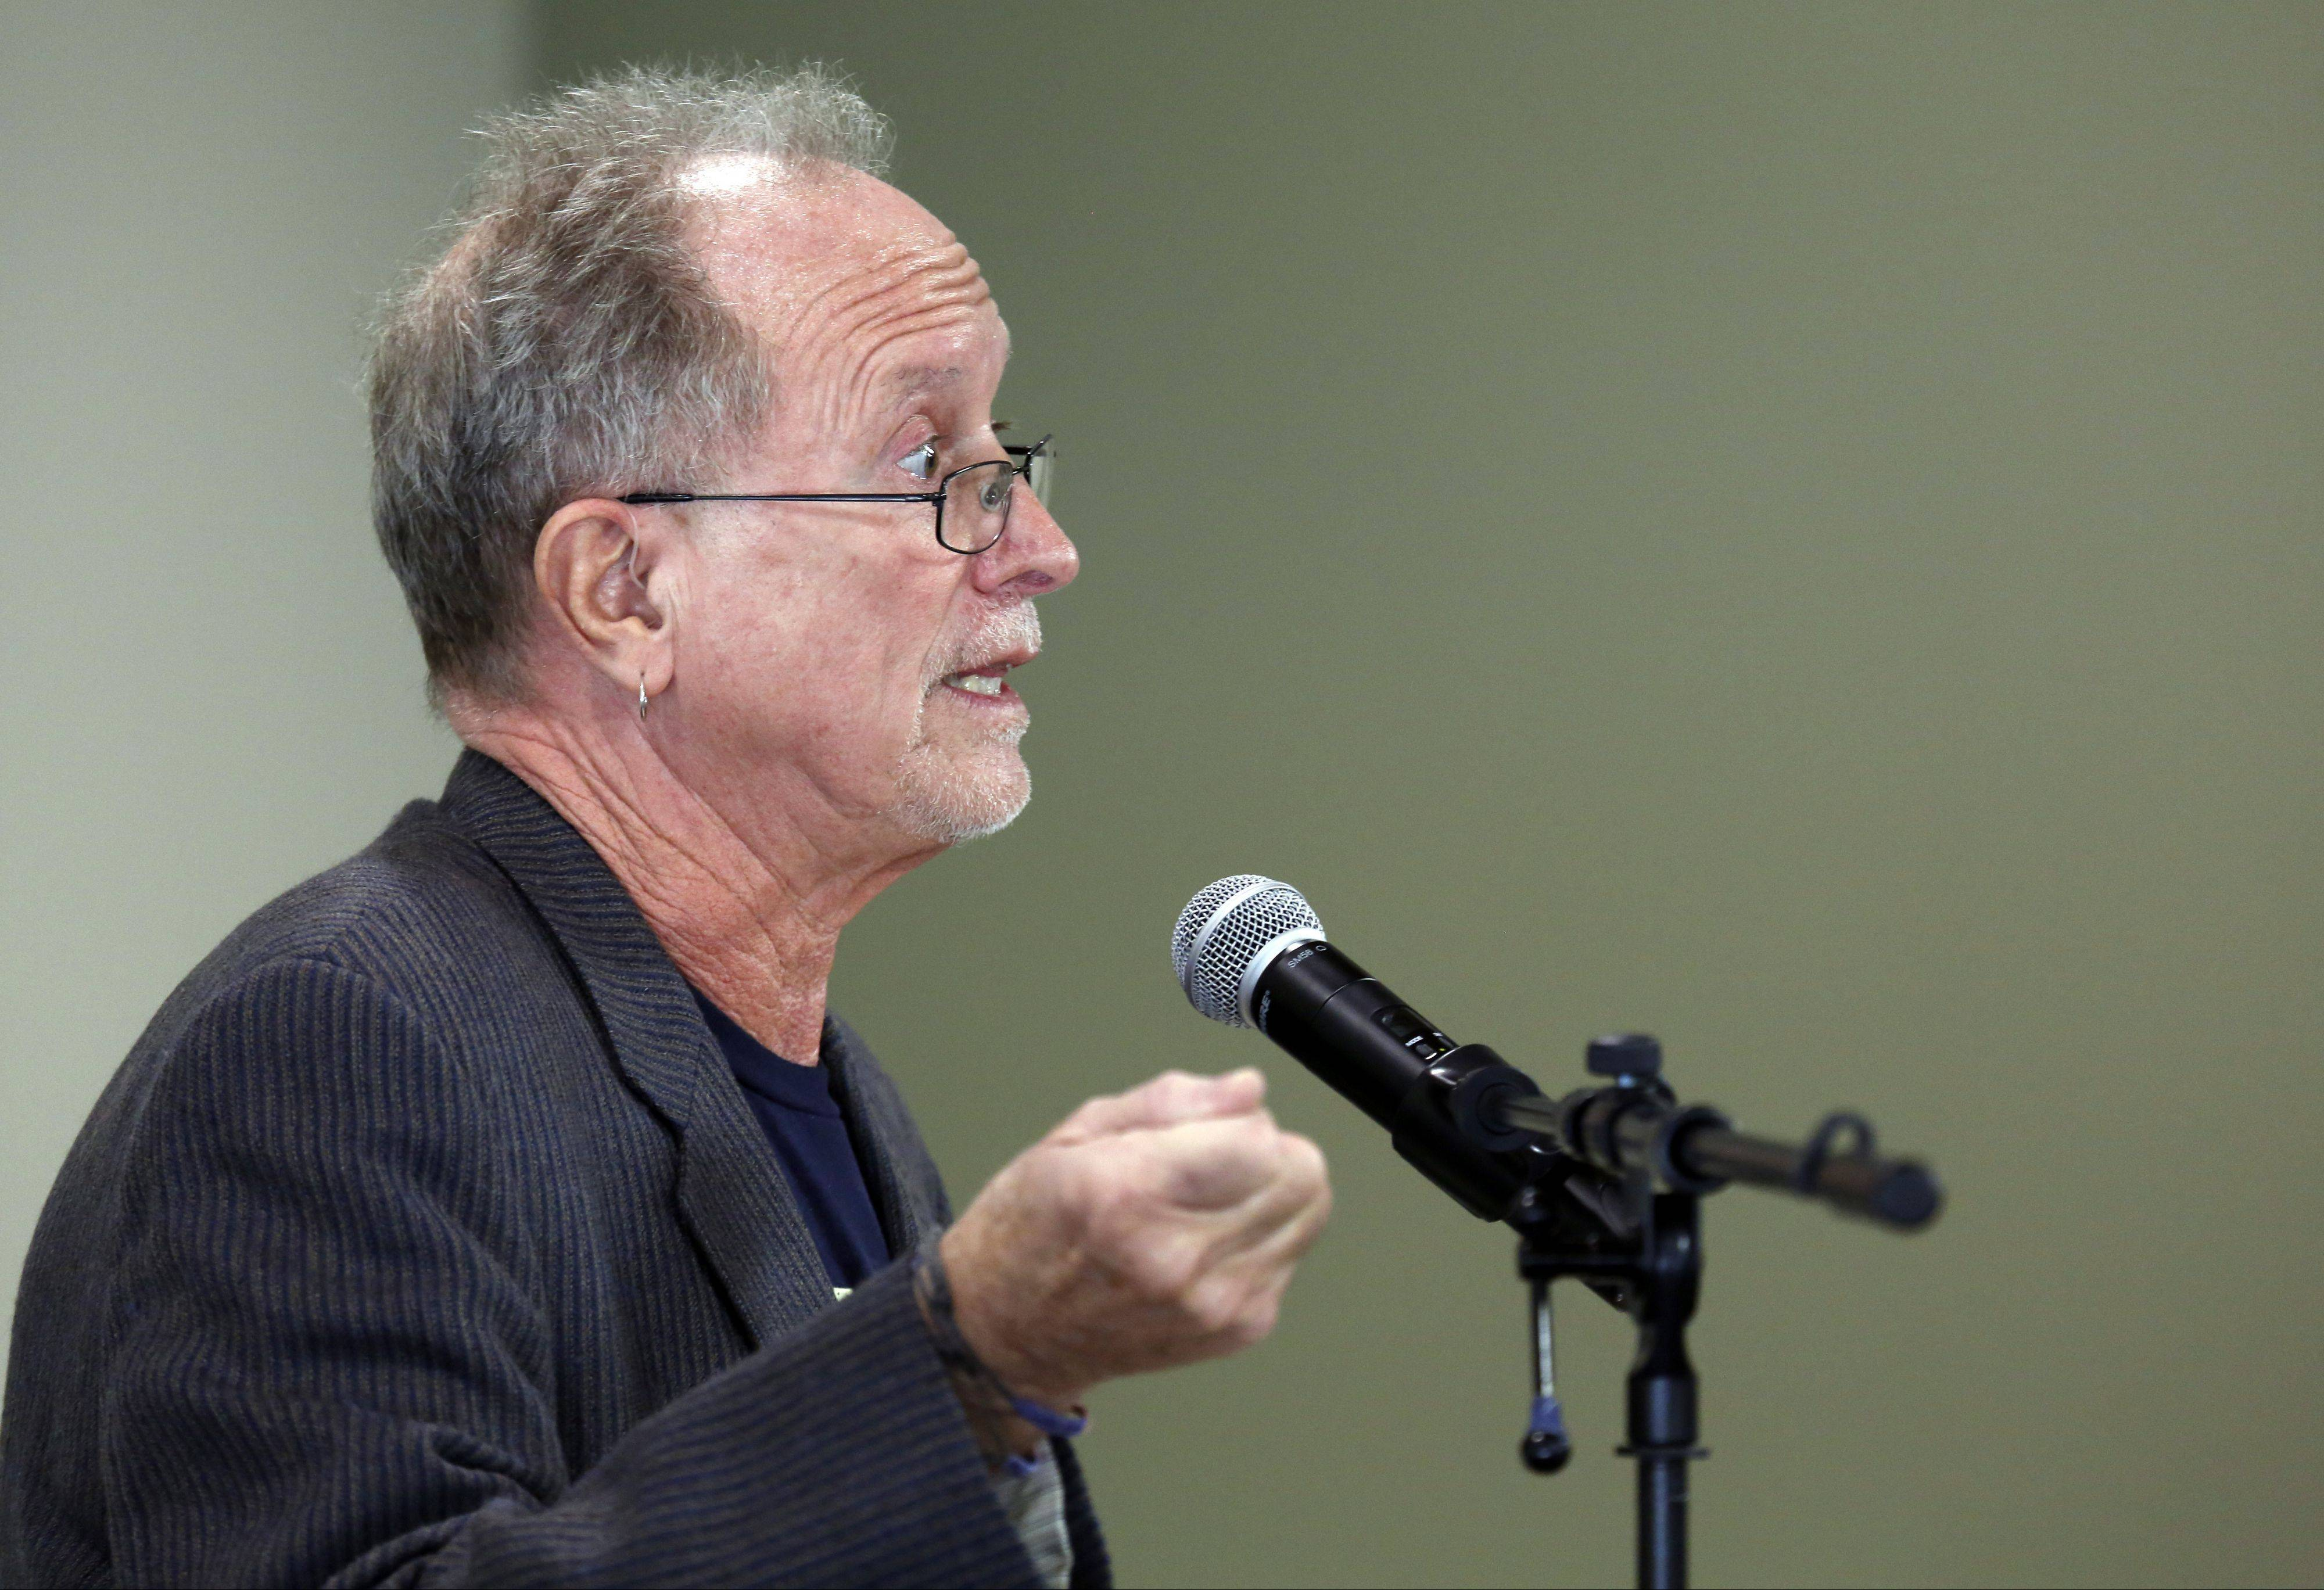 William Ayers, controversial former professor and one-time leader in the '60s and '70s protest movement, appeared at Elgin Community College Thursday.